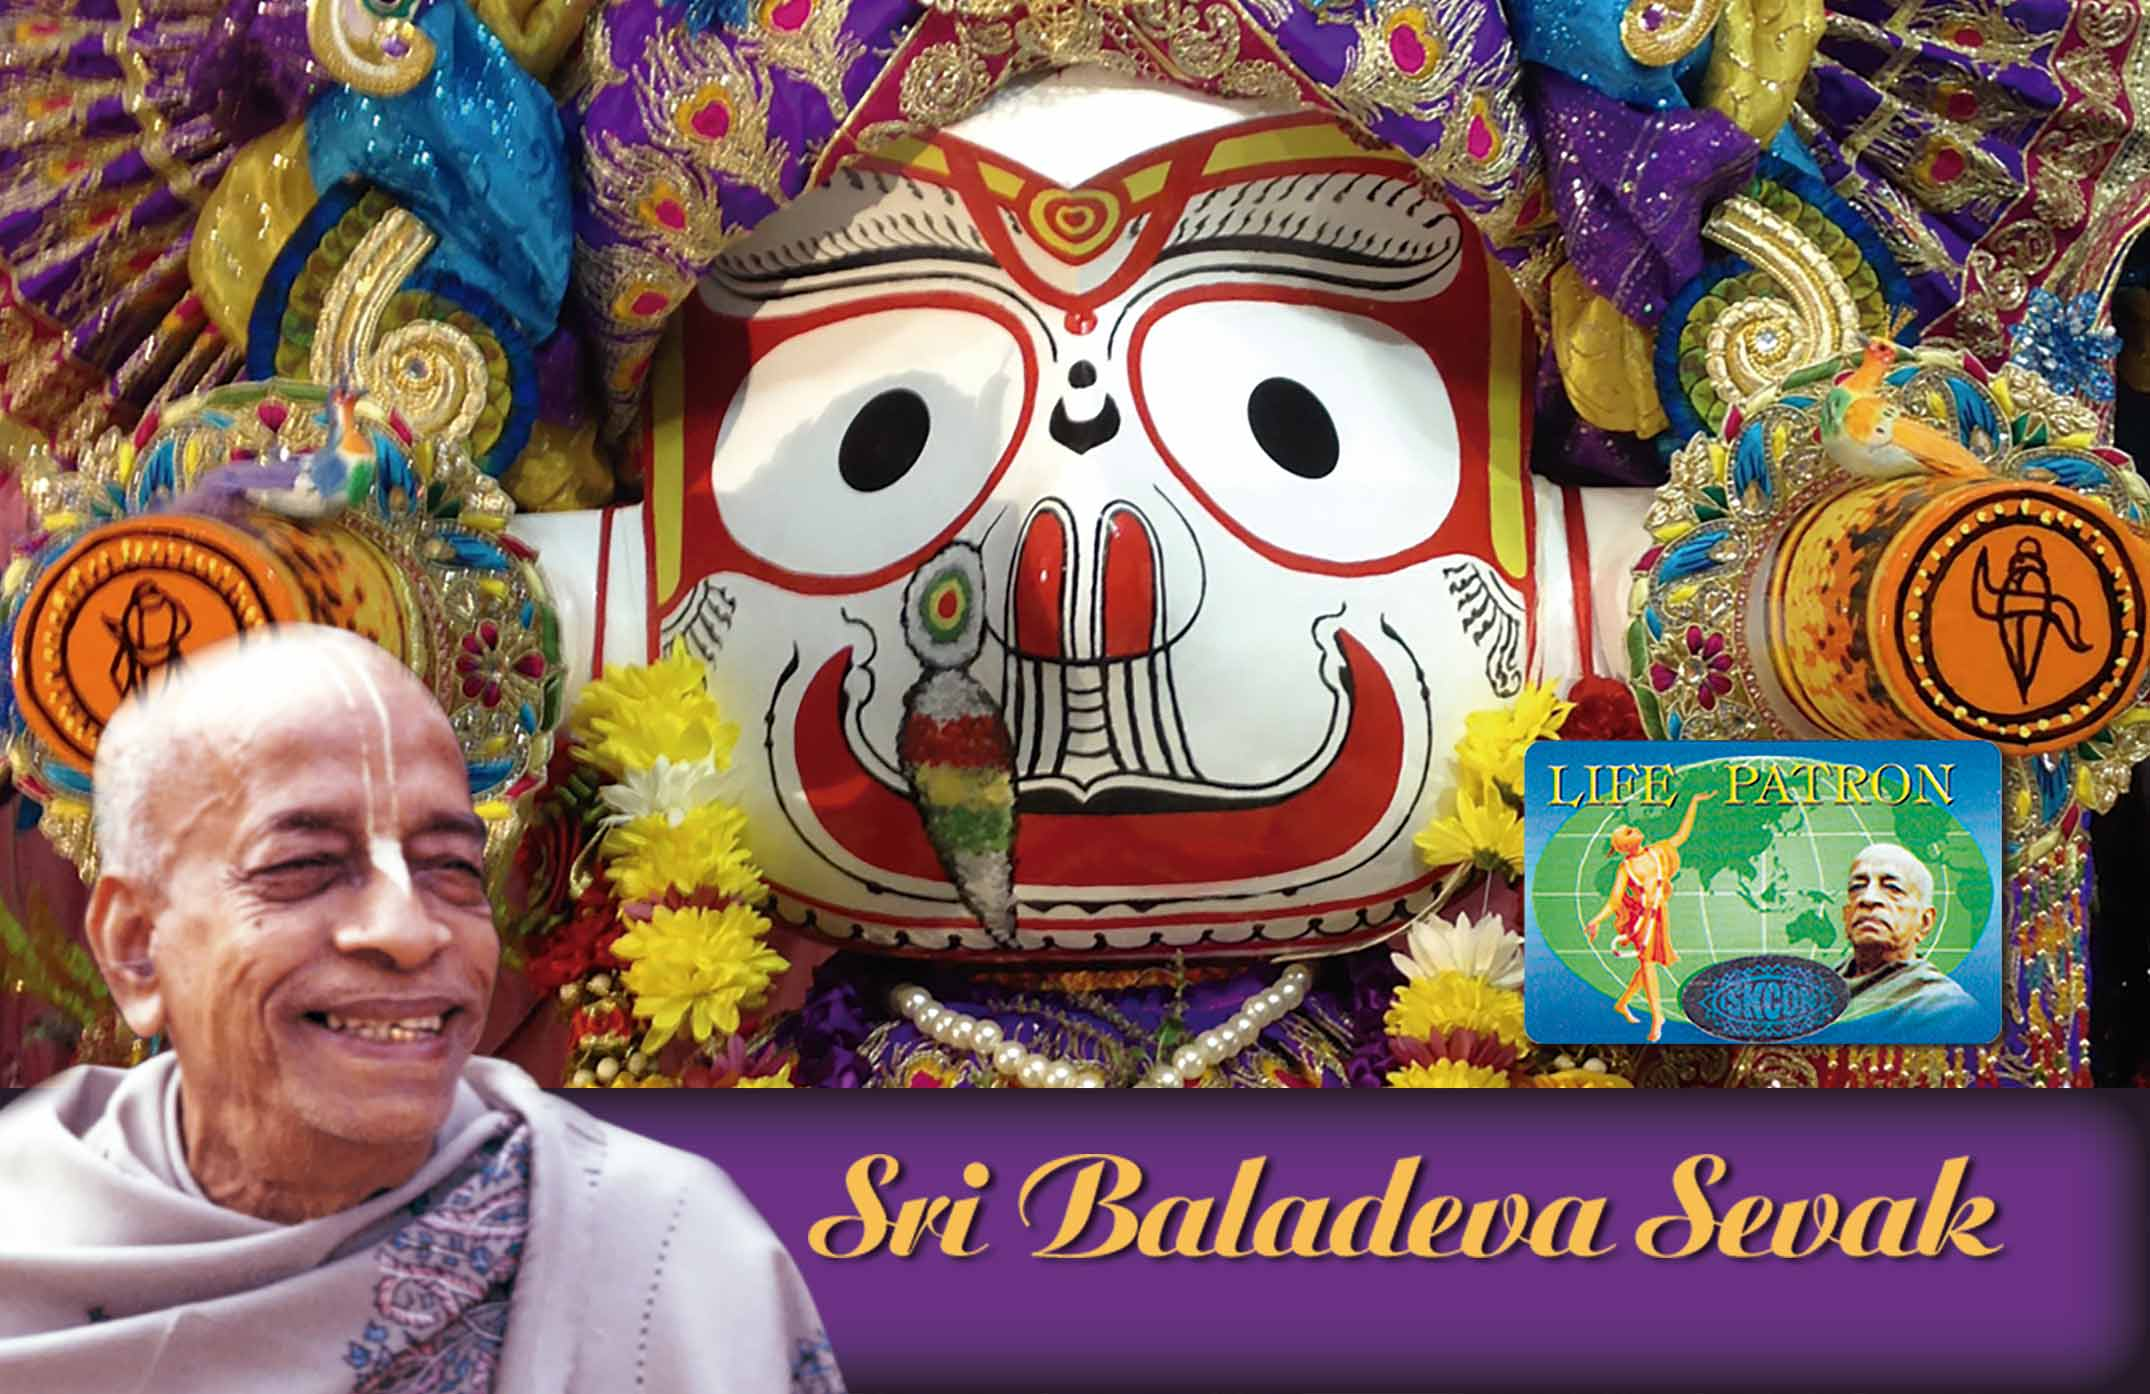 Sri Baladeva Sevak – Sponsorship of 5.111 €